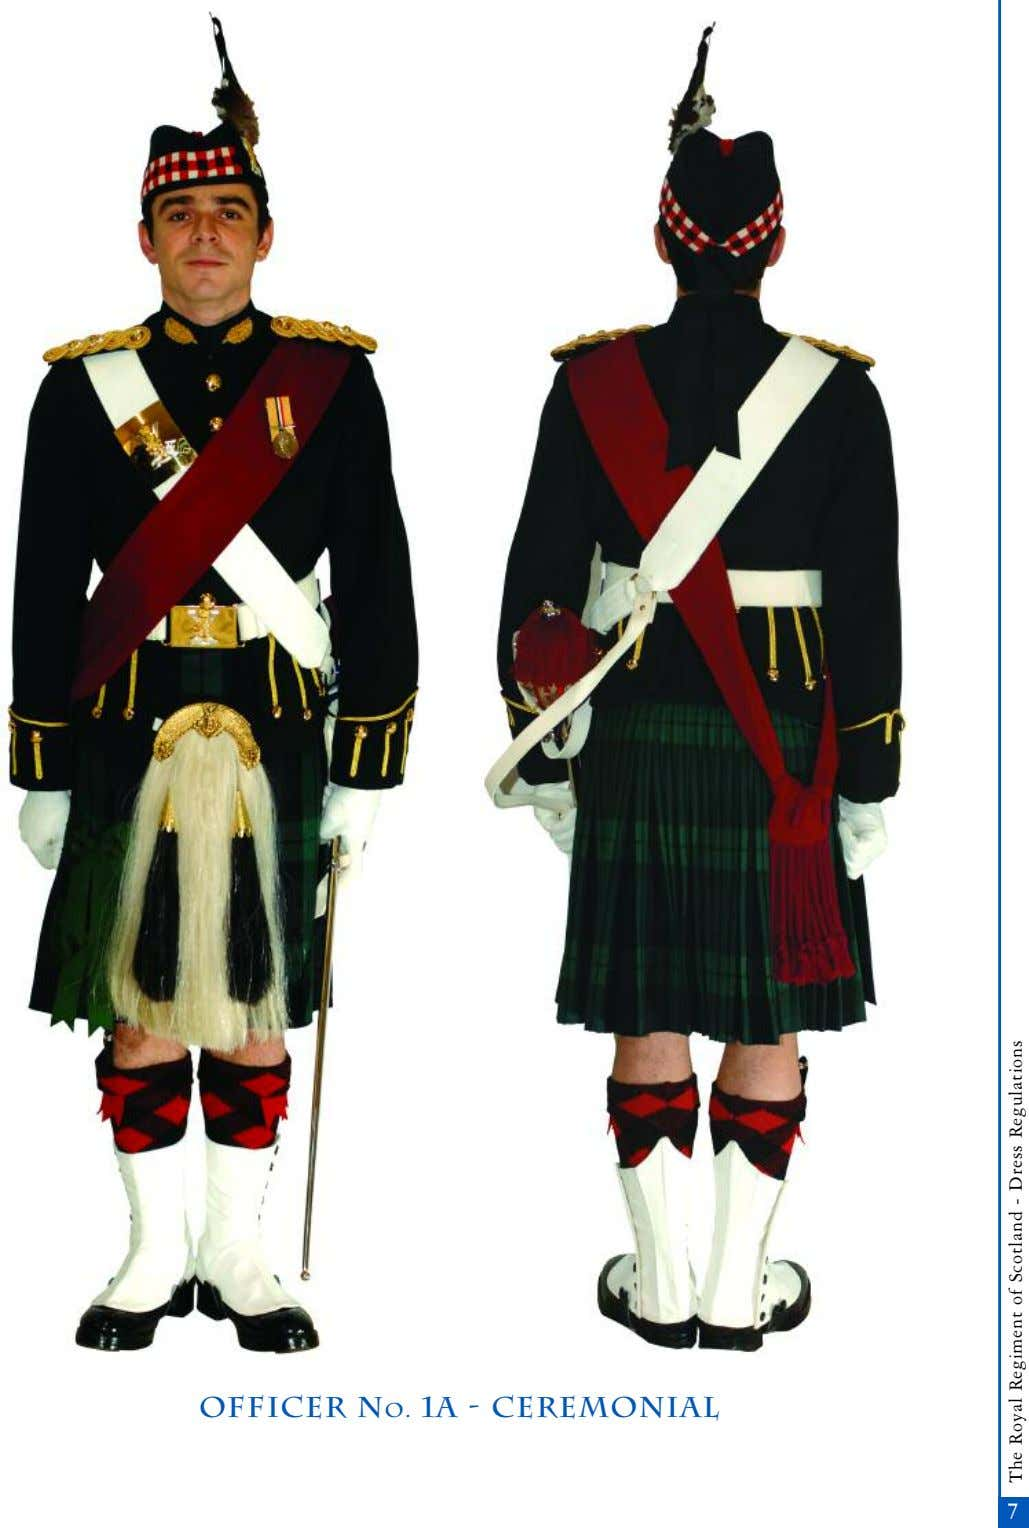 OFFICER No. 1A - Ceremonial 7 The Royal Regiment of Scotland - Dress Regulations